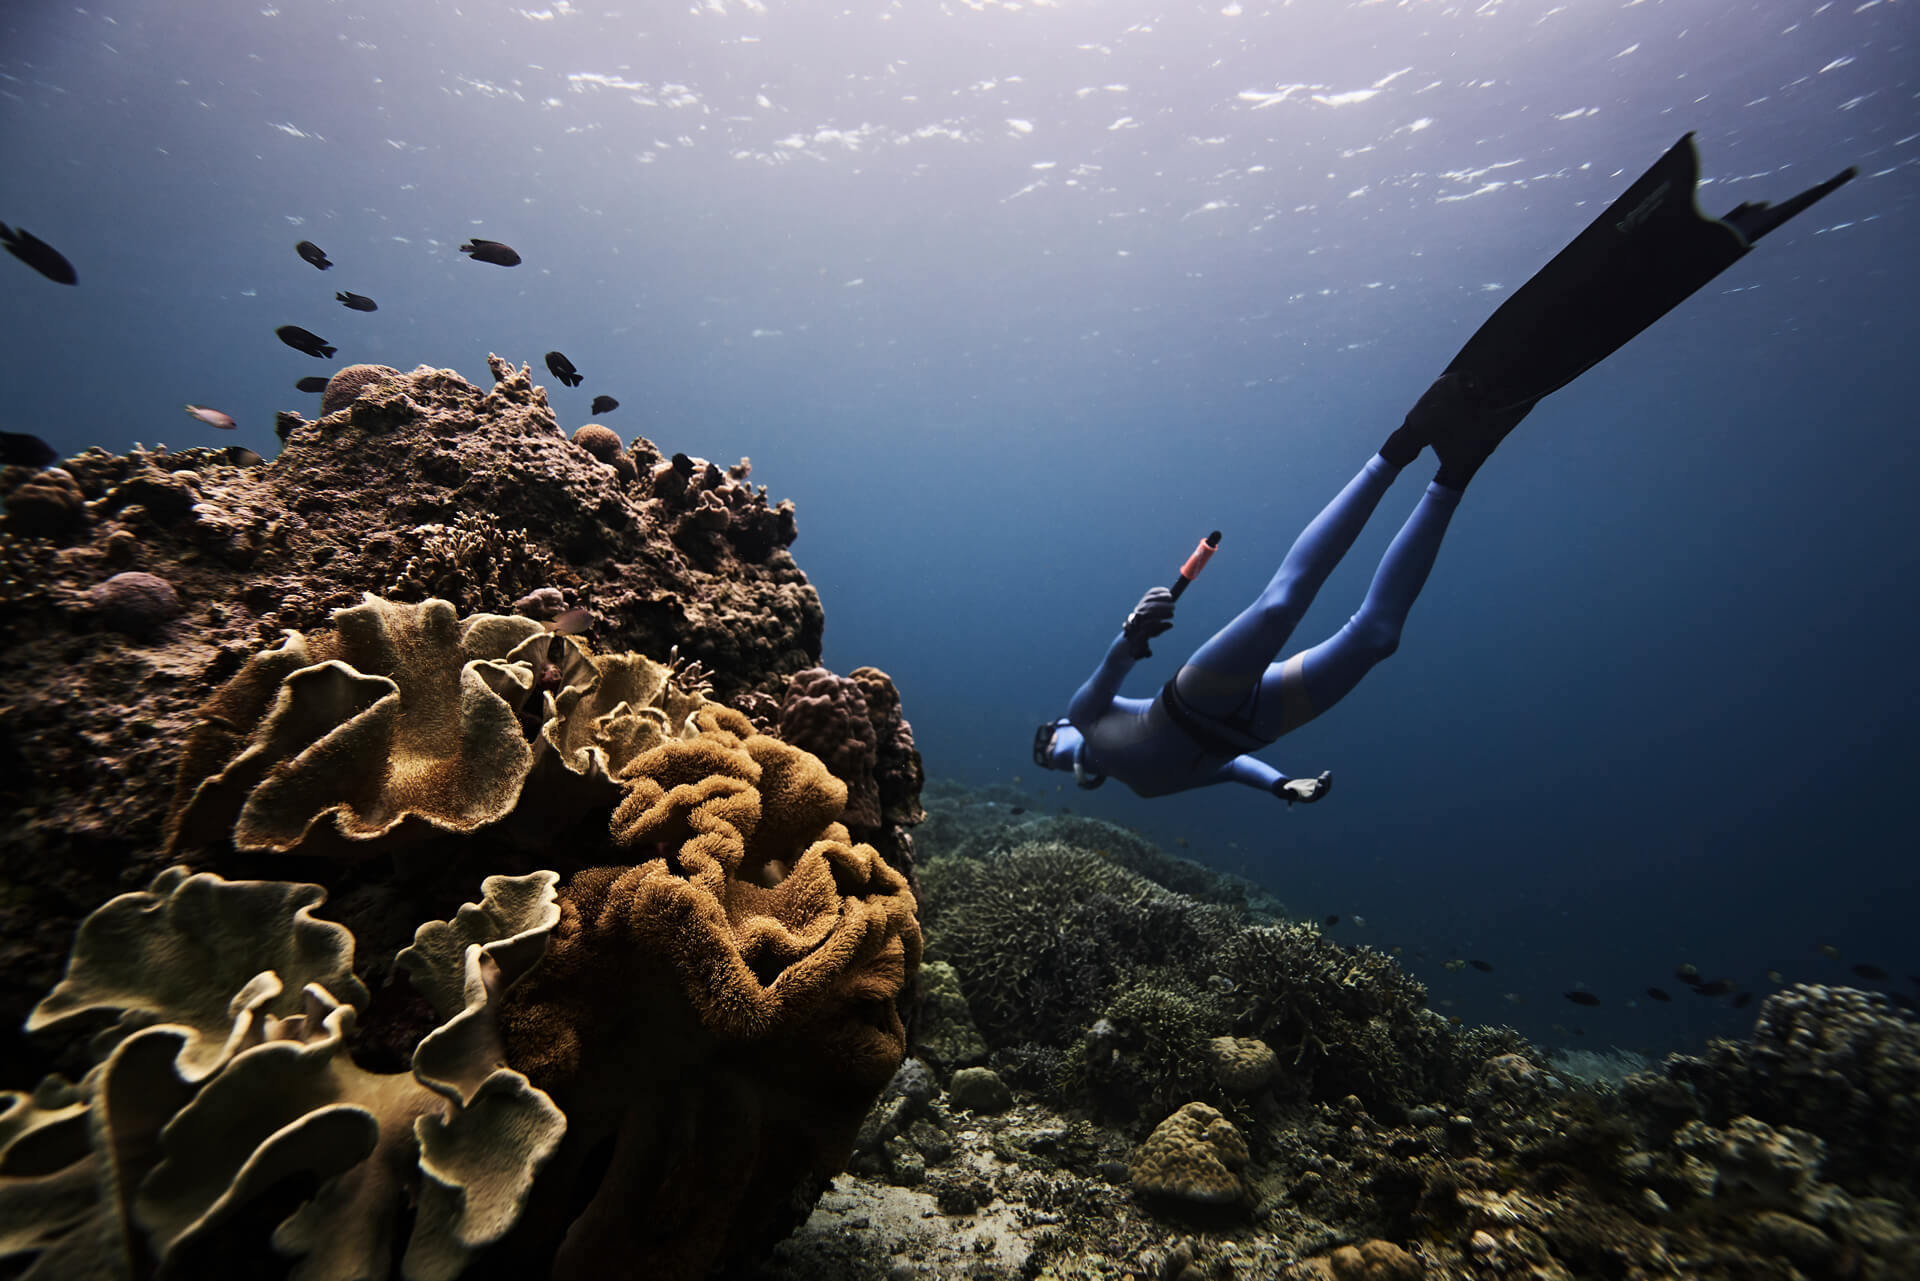 Freediver swimming by a coral reef